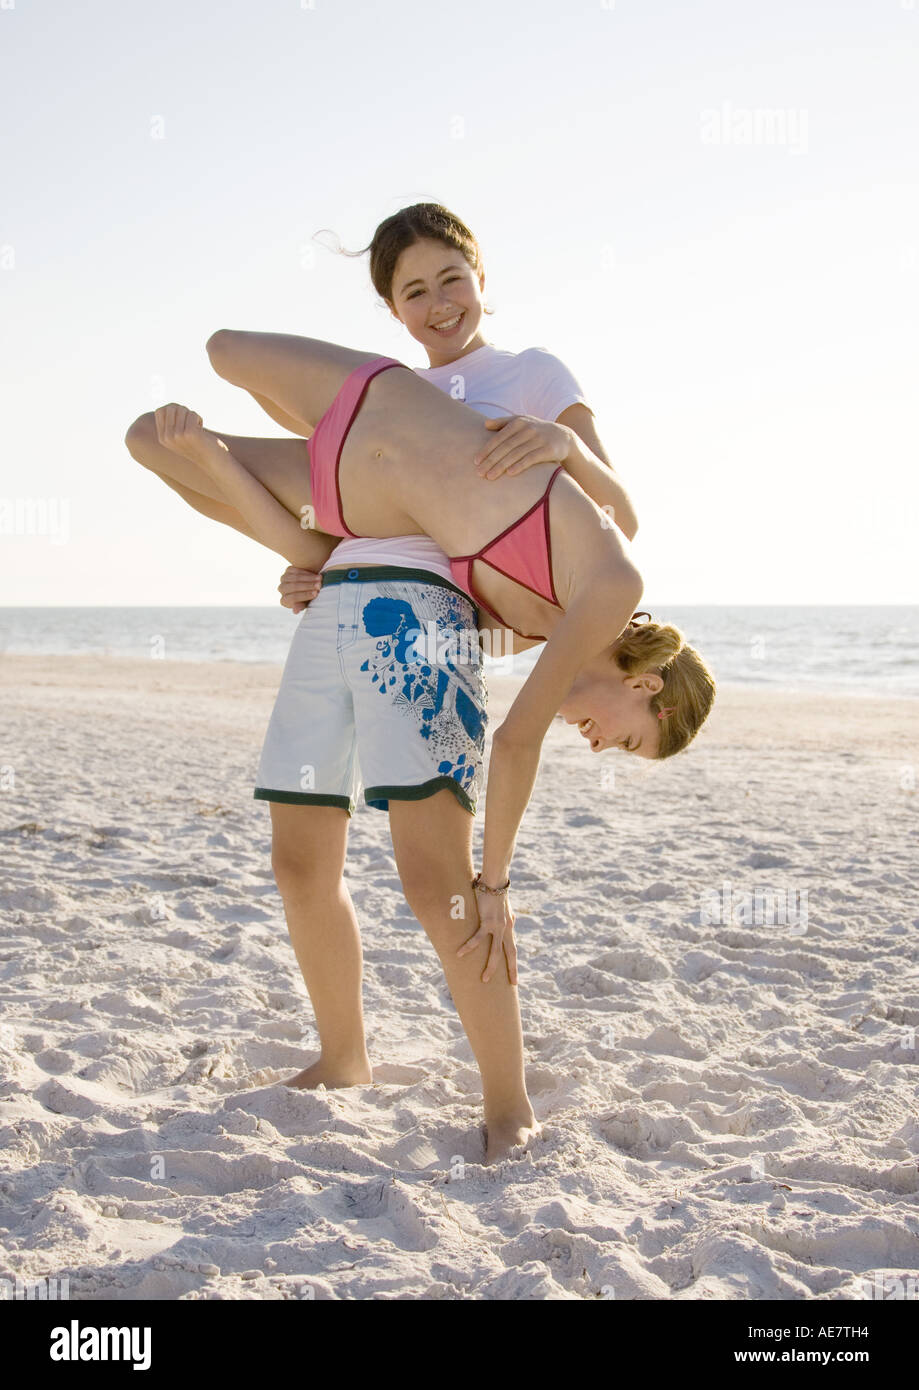 Girl flipping sister over on beach - Stock Image